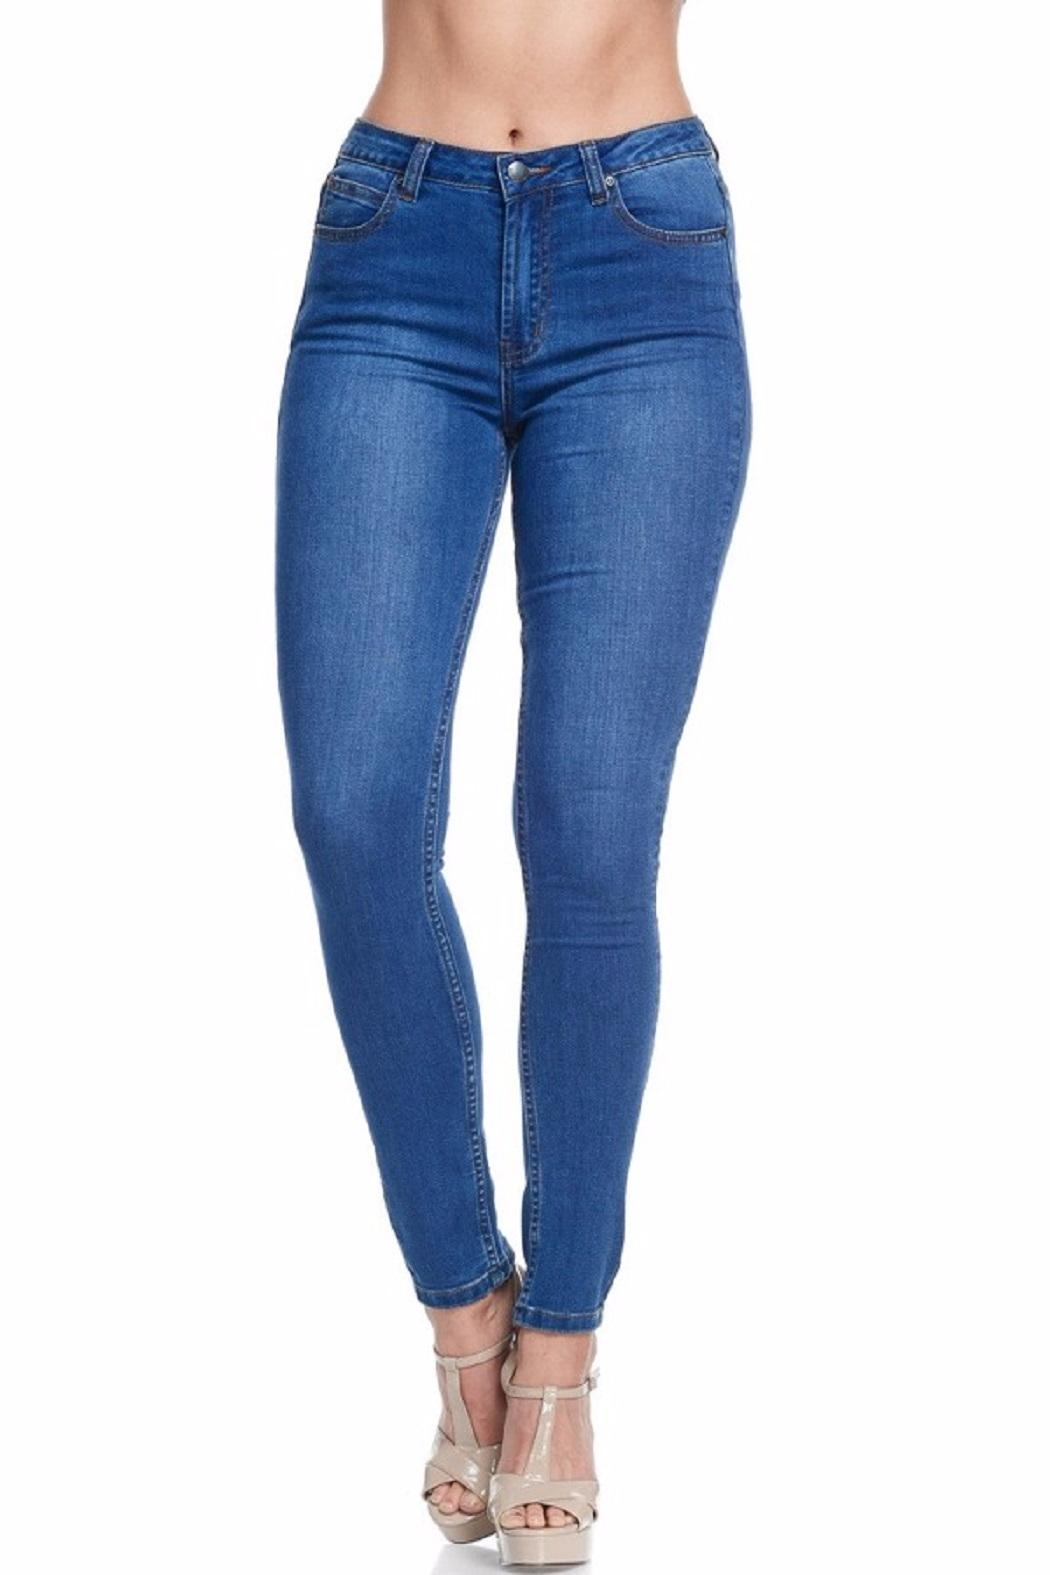 American Bazi Classic Blue Jeans - Front Full Image